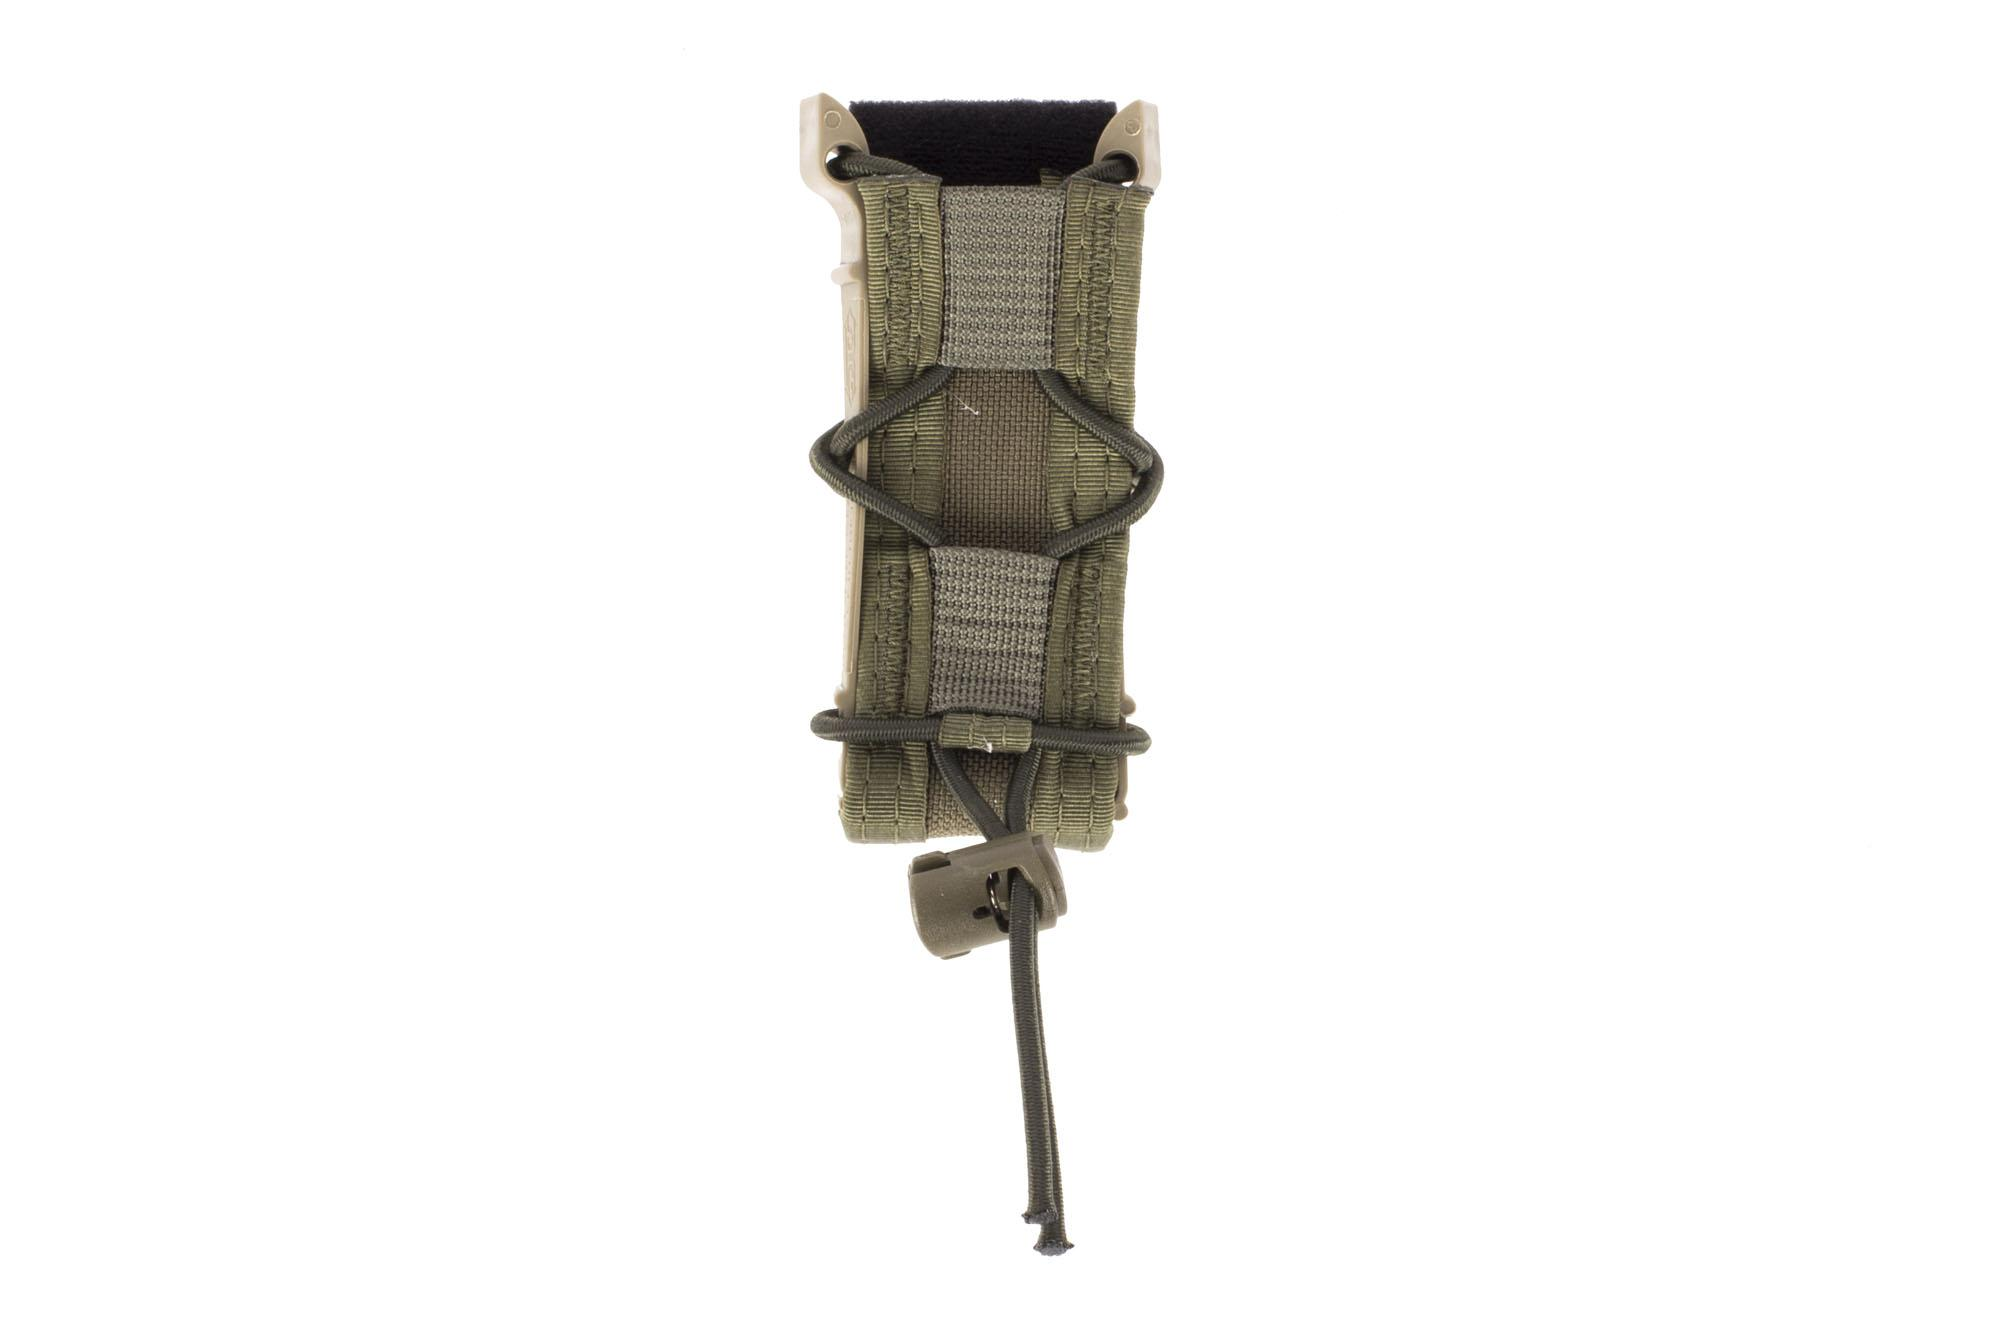 High Speed Gear Pistol TACO Magazine Pouch Belt Mount - Olive Drab Green